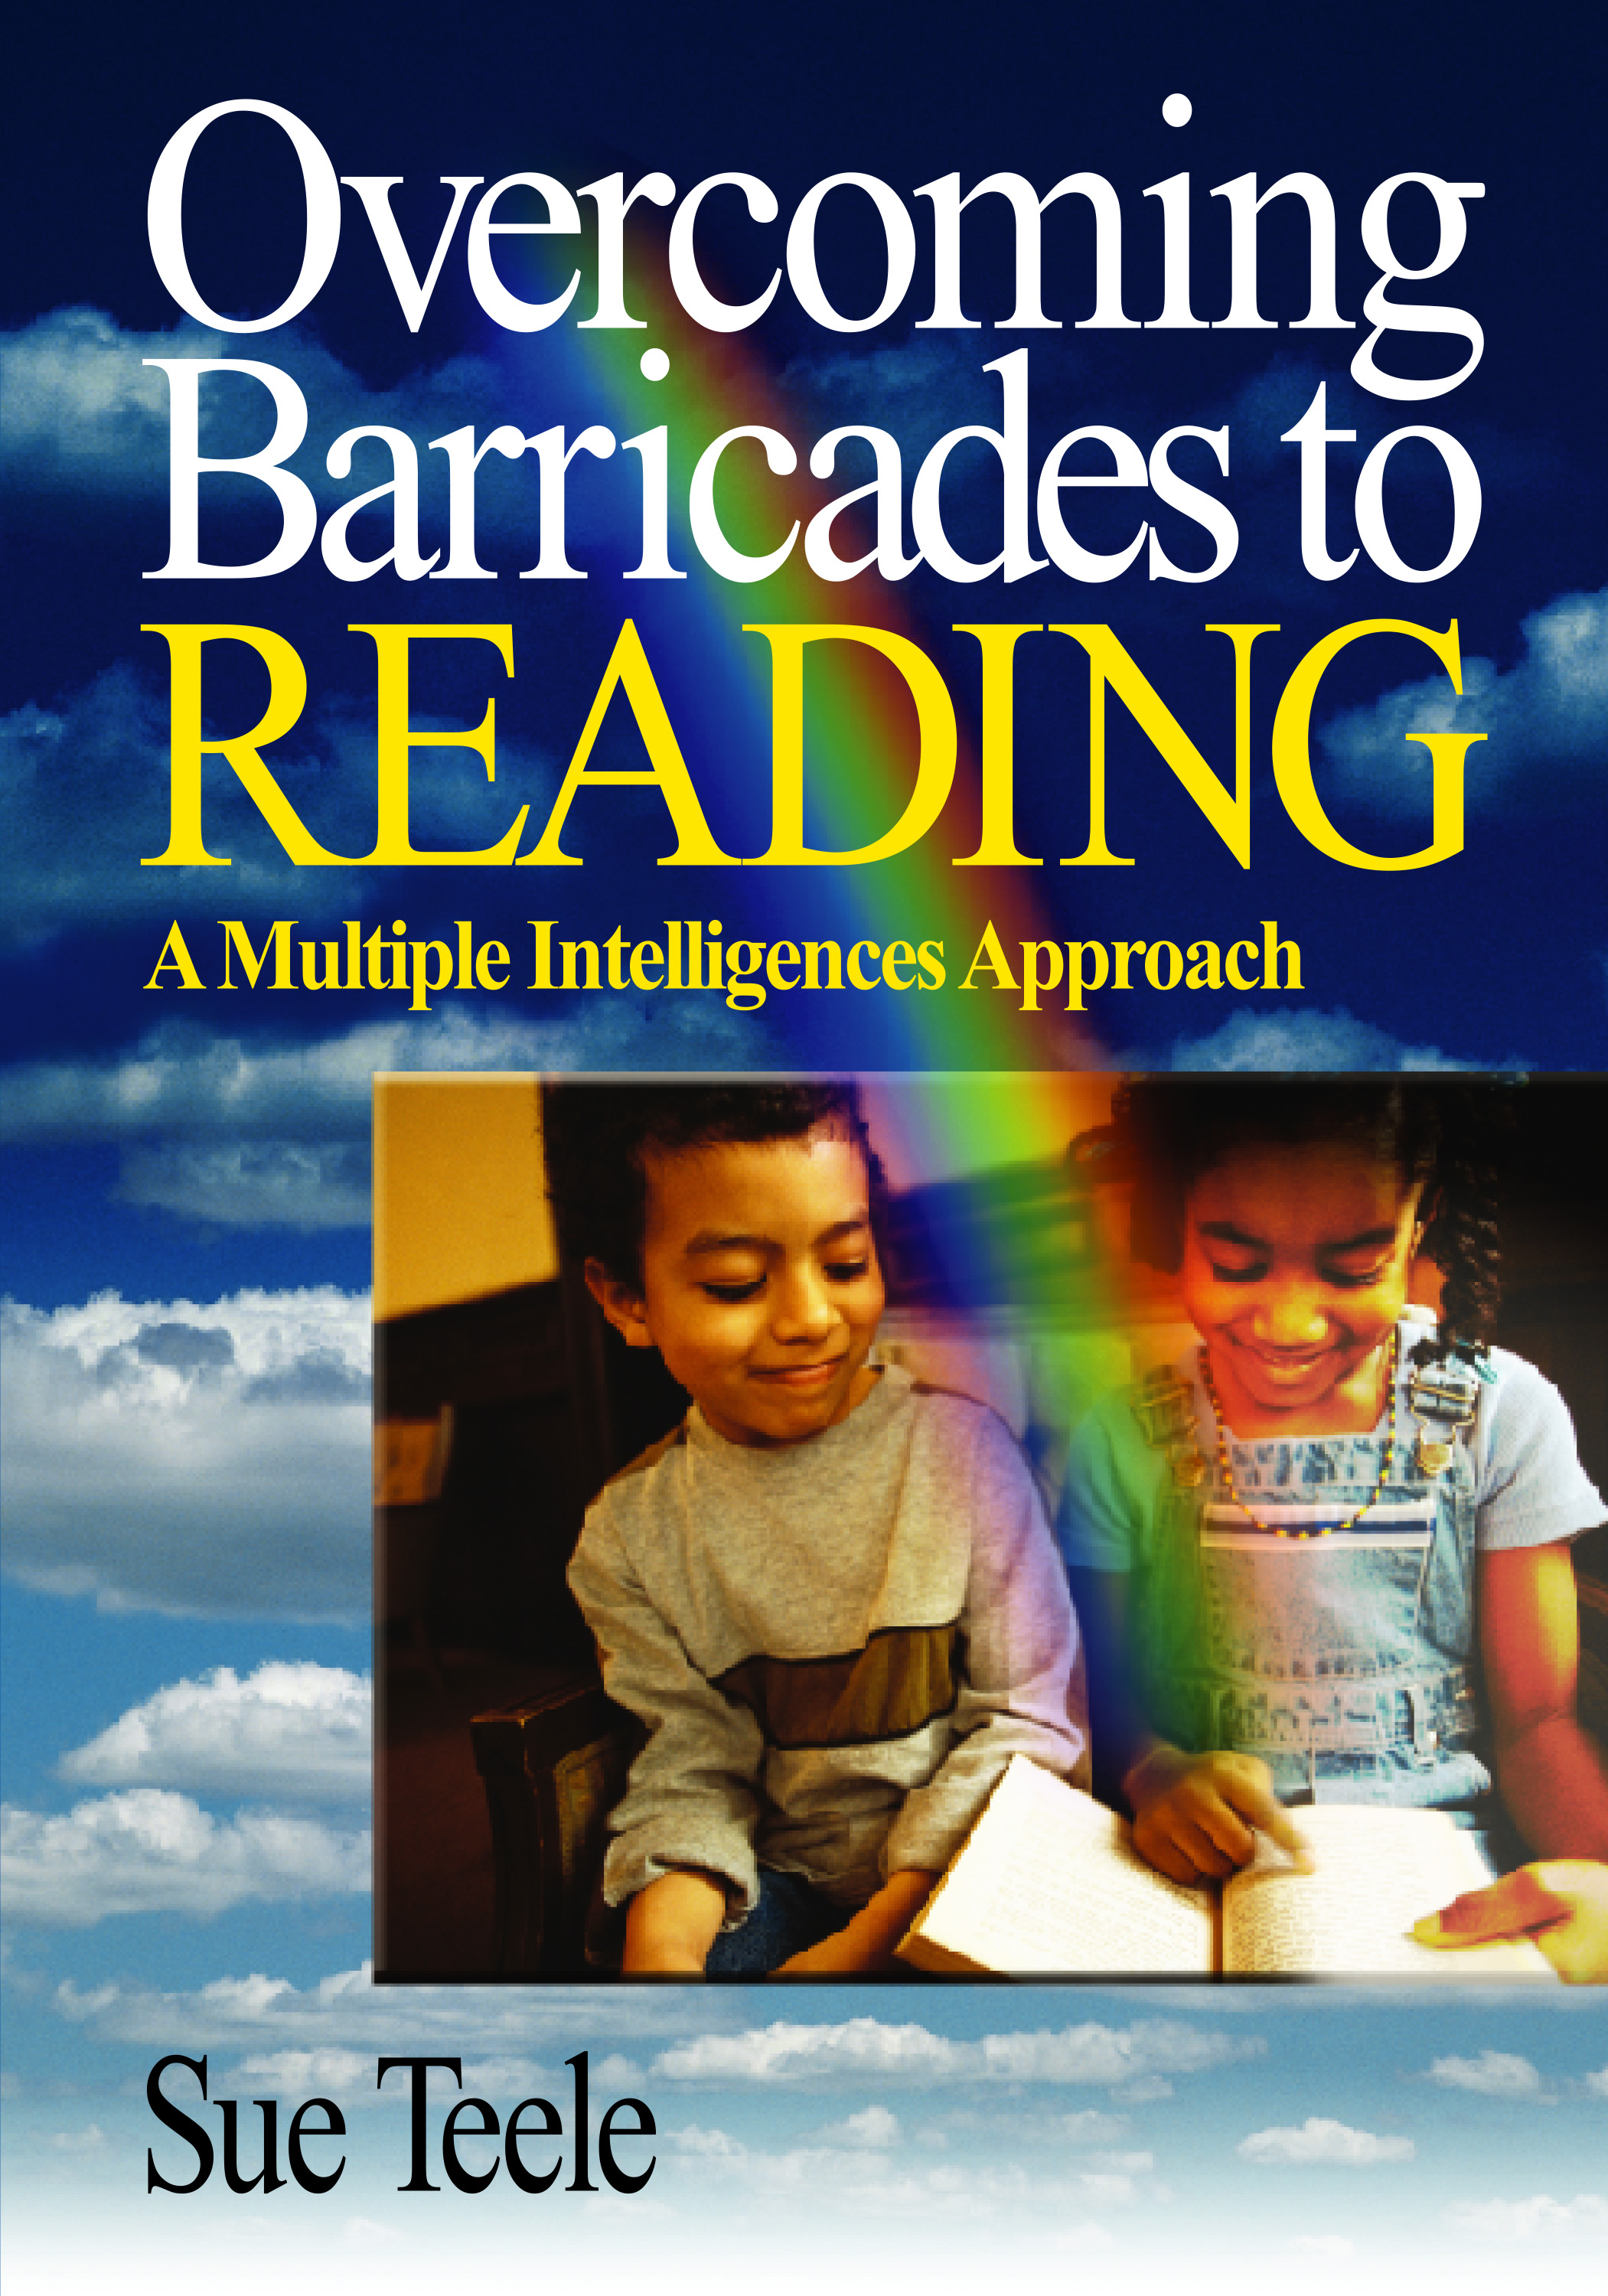 Overcoming Barricades to Reading